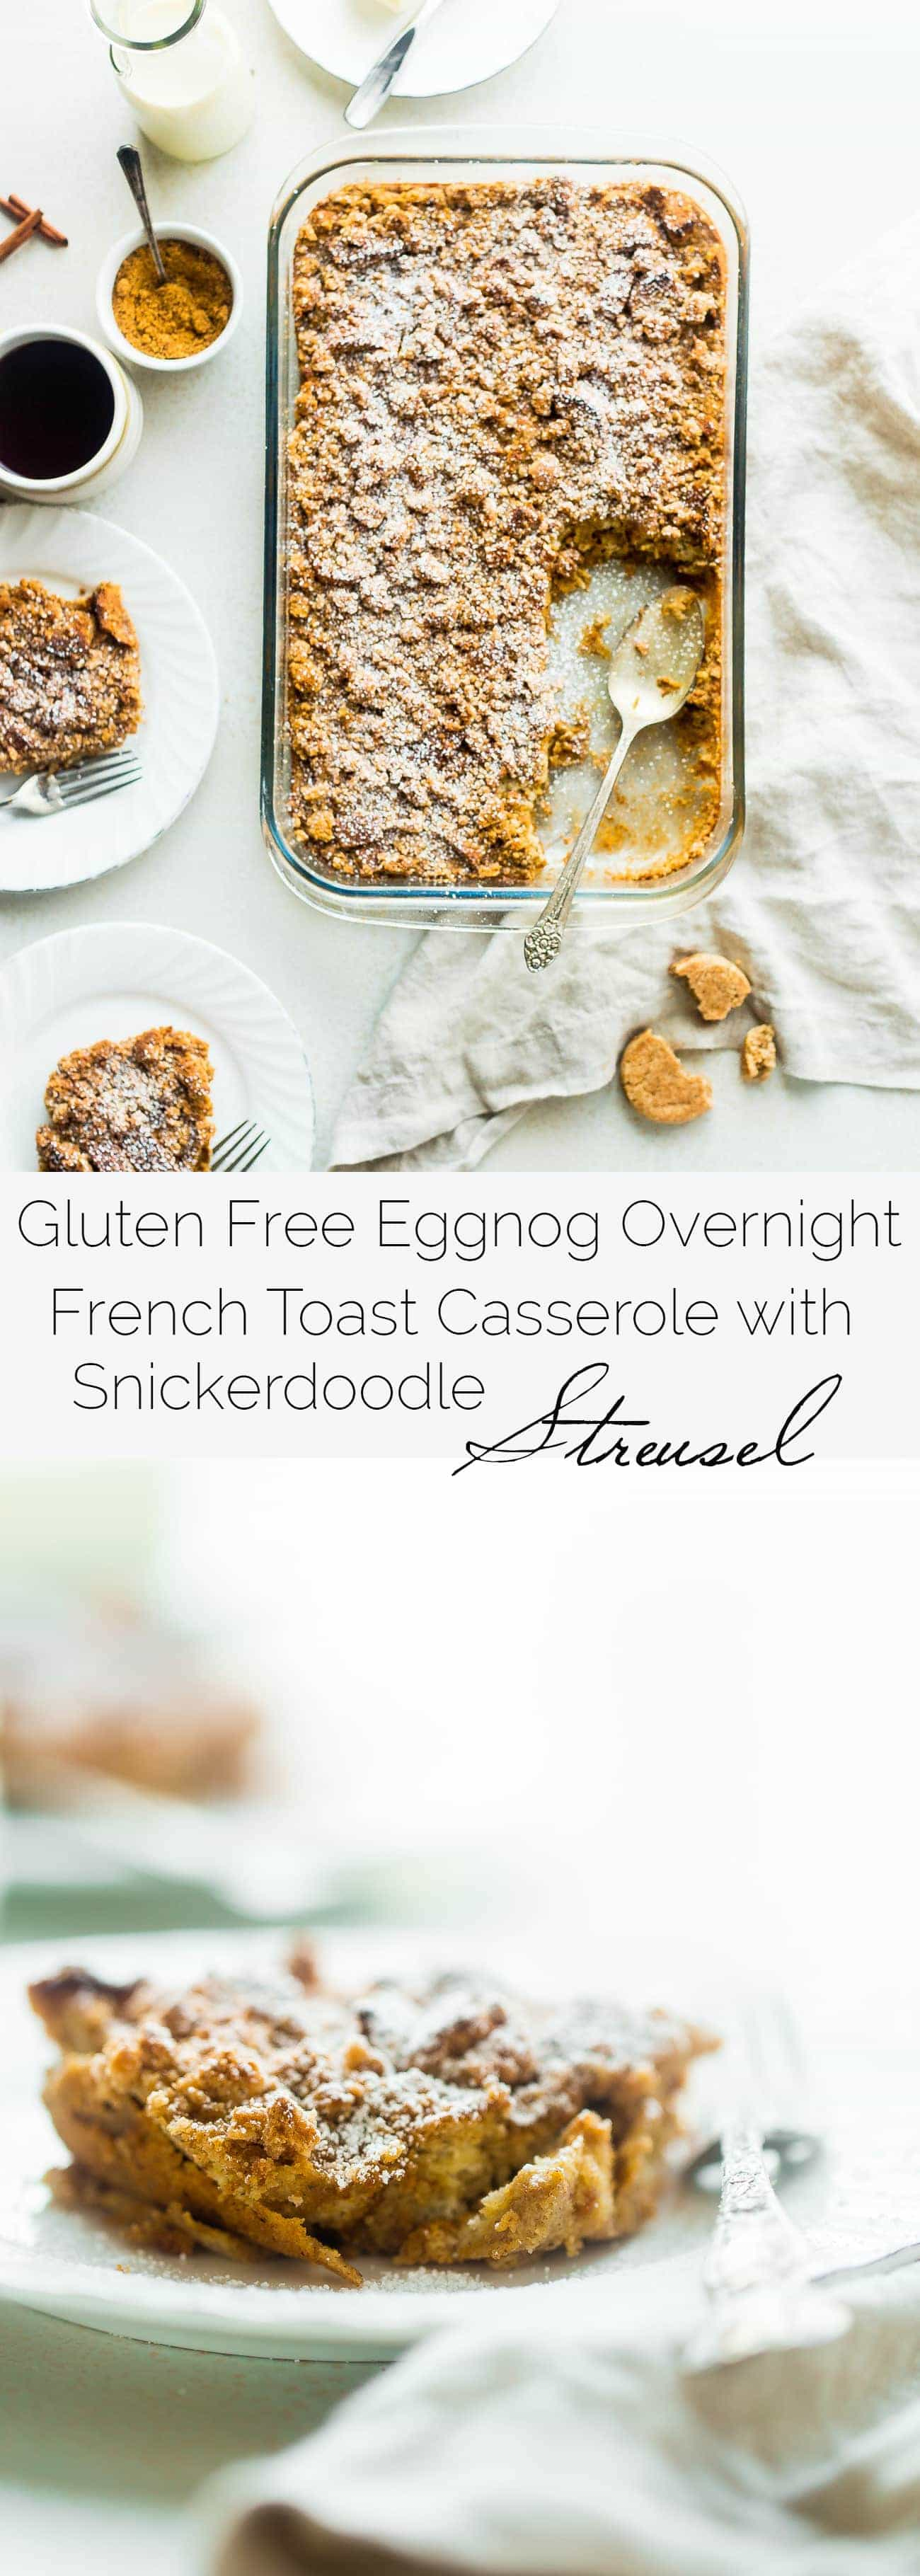 Gluten Free Overnight Eggnog Snickerdoodle Baked French Toast Casserole - Made with creamy eggnog and a snickerdoodle cookie streusel! It's the perfect make-ahead Christmas morning breakfast! | Foodfaithfitness.com | @FoodFaithFit